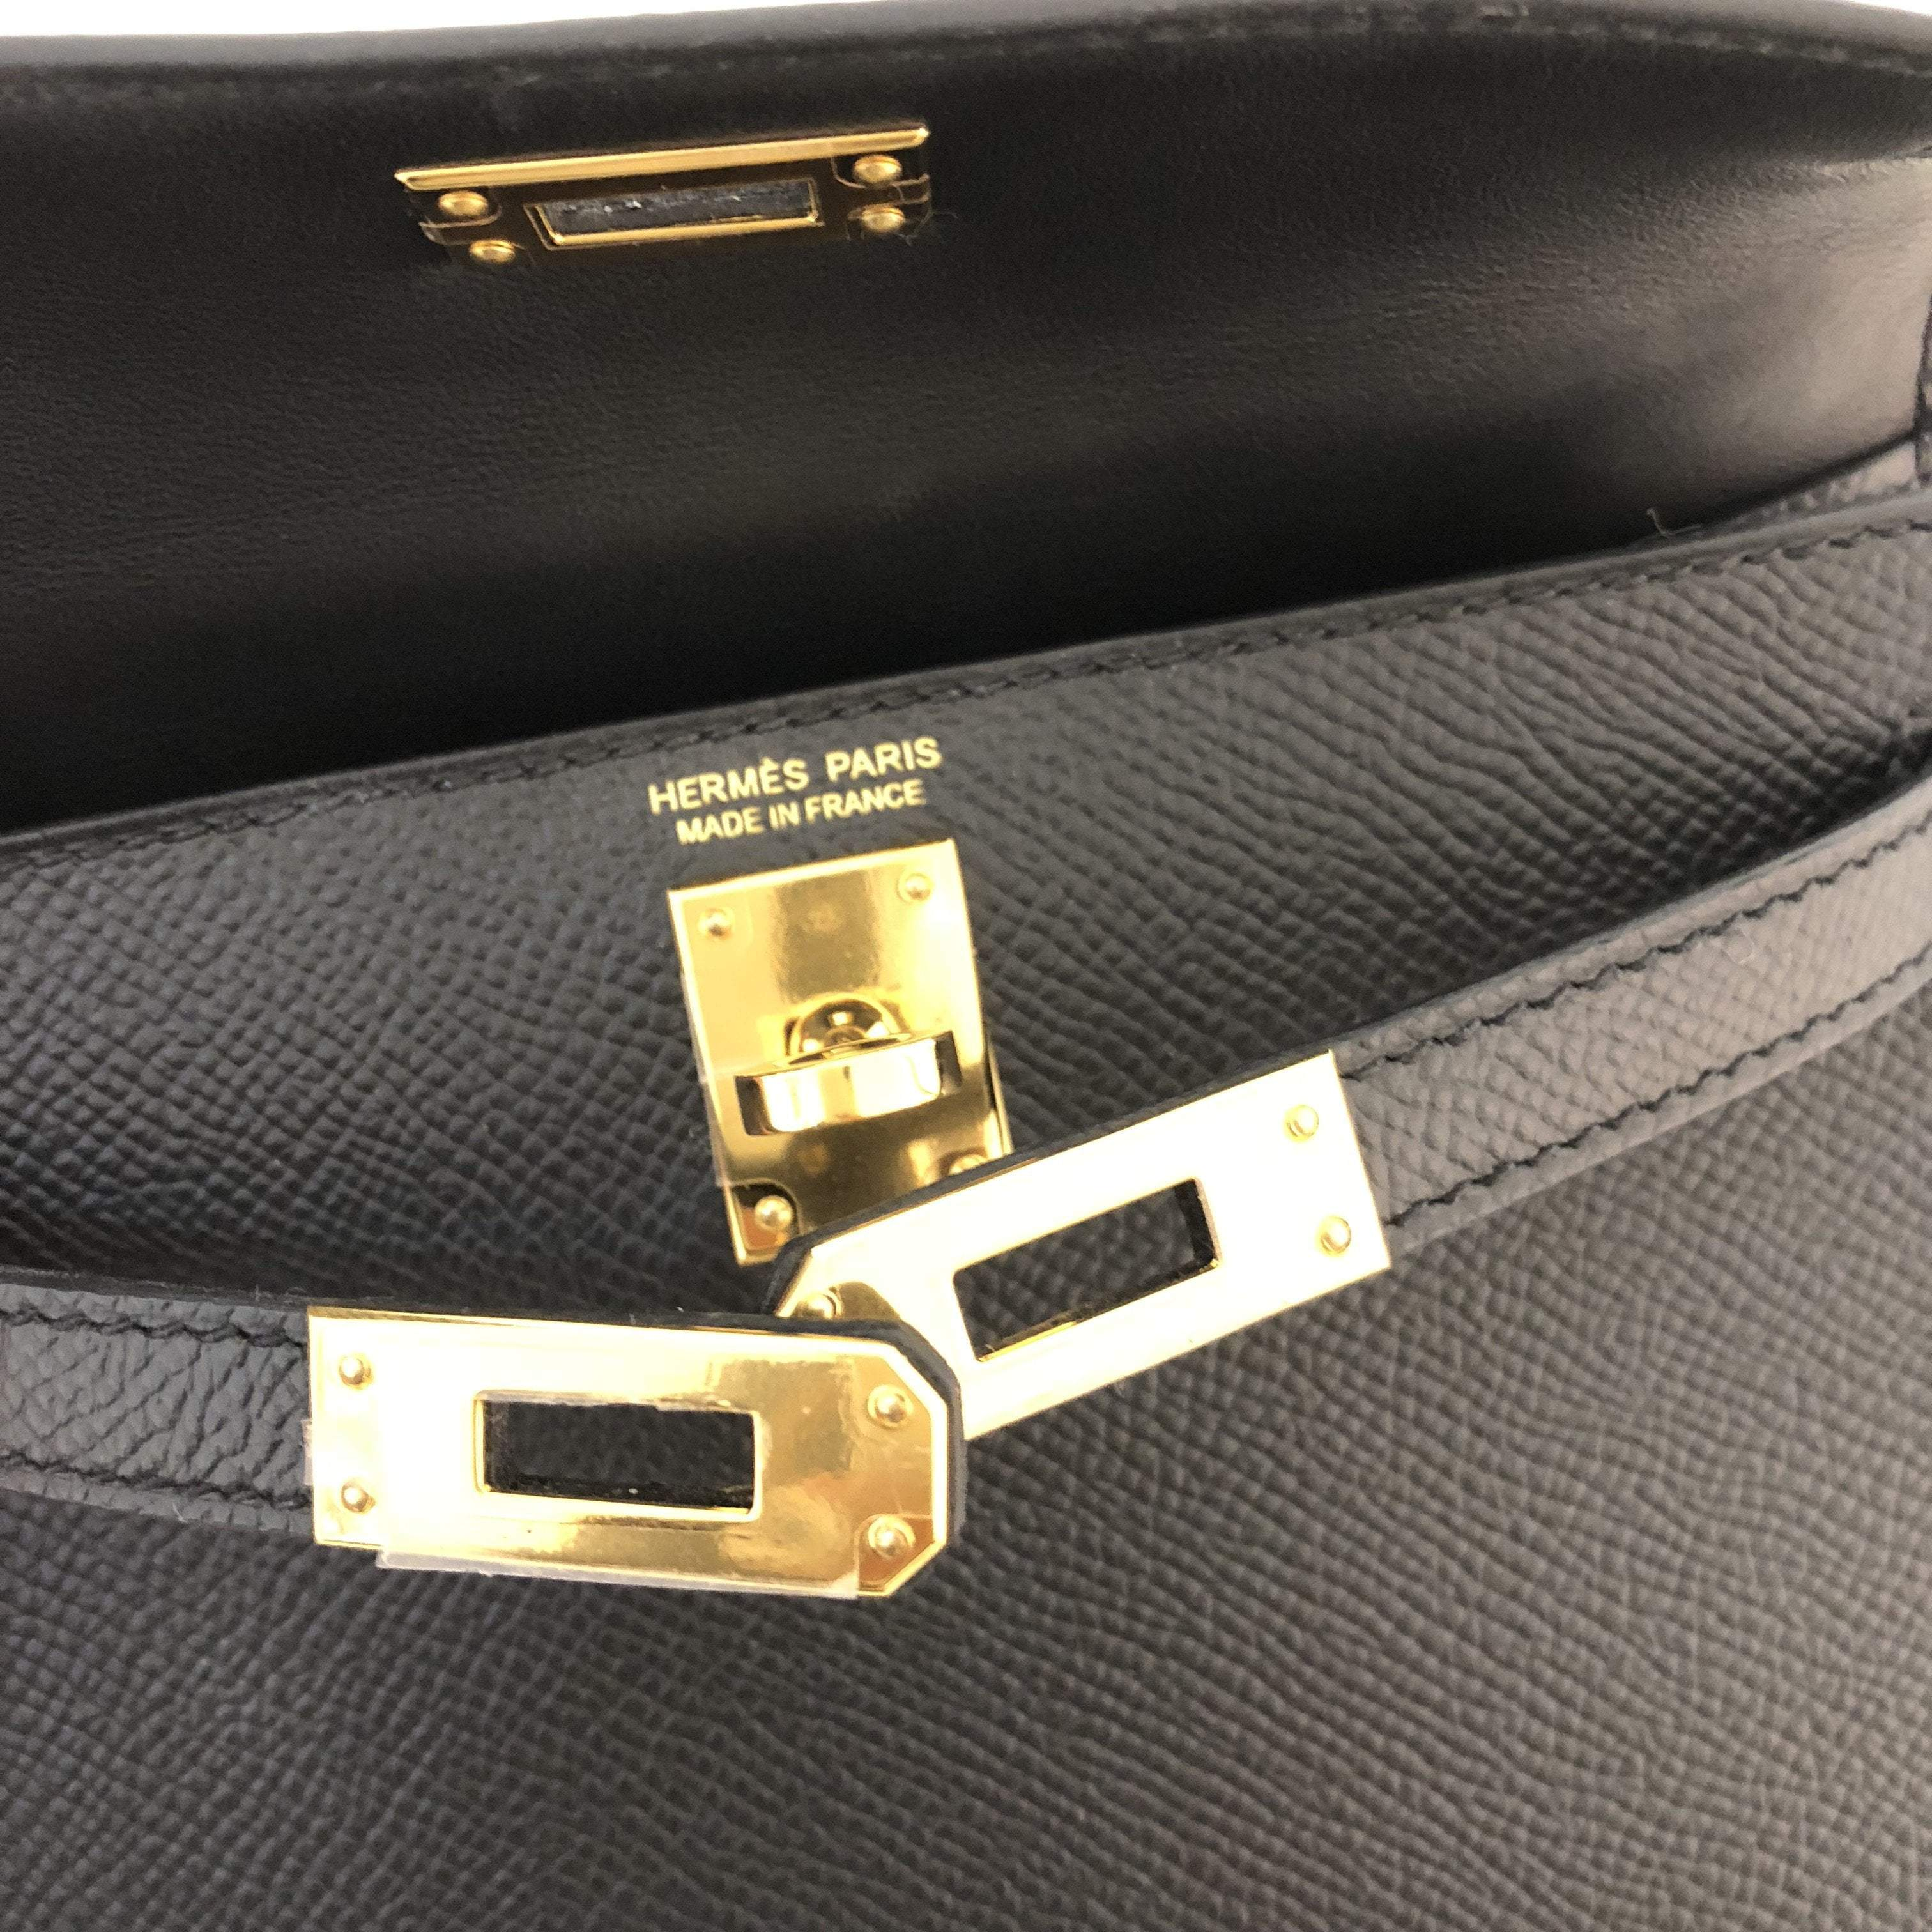 Hermes Noir Epsom Leather Mini Kelly II Bag with Gold Hardware